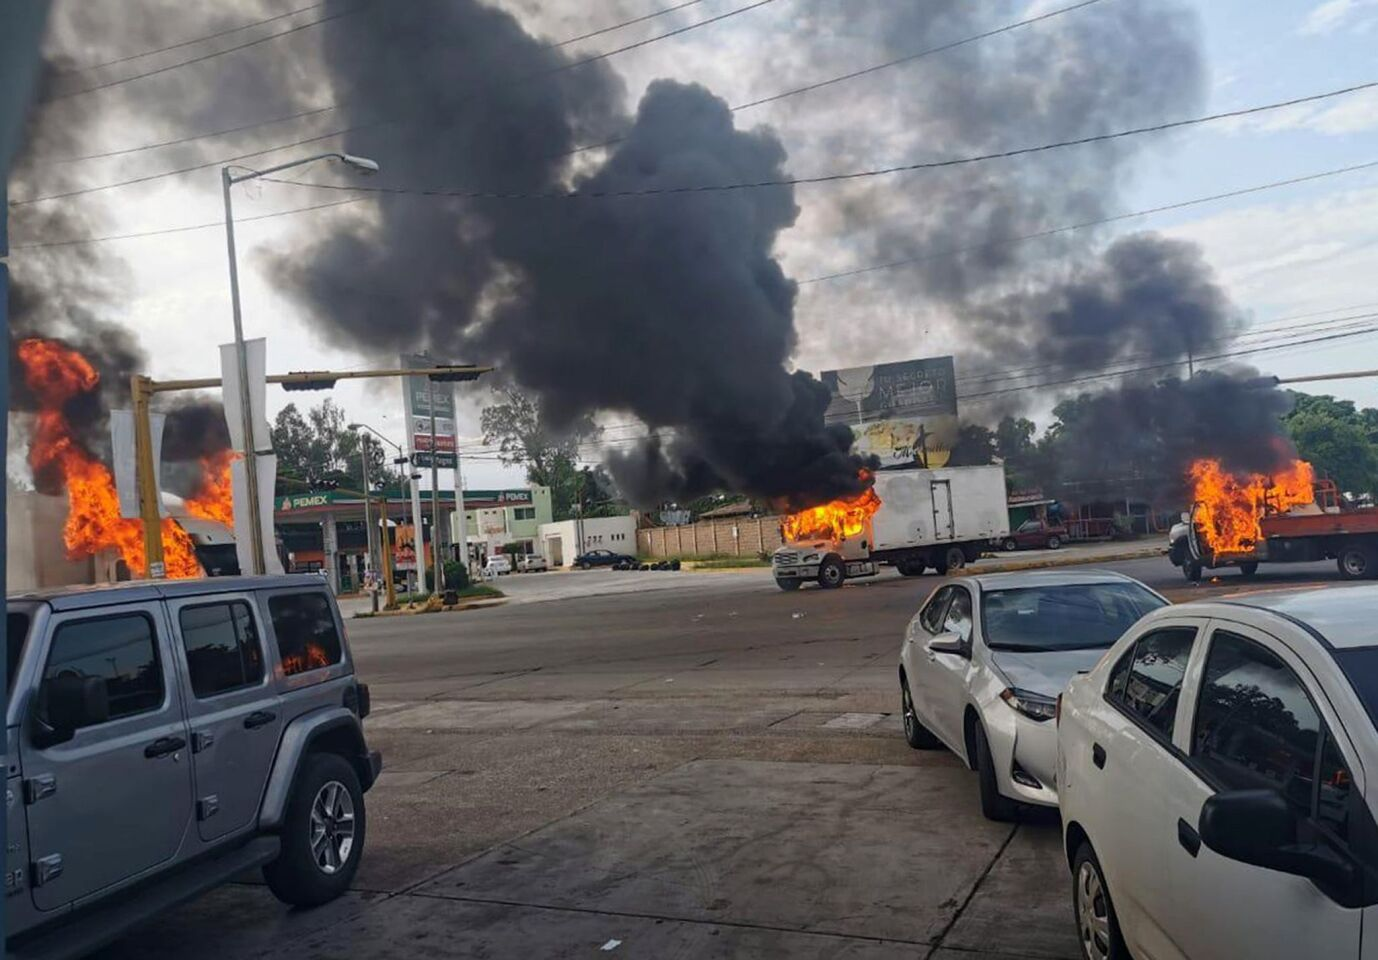 Mandatory Credit: Photo by STR/EPA-EFE/REX (10449104a) A view of vehicles on fire during a clash between armed gunmen and Federal police and military soldiers, in the streets of the city of Culiacan, Sinaloa state, Mexico, 17 October 2019. According to media reports, alleged drug cartel gunmen set up blockades and unleashed volleys of gunfire in the Mexican city of Culiacan amid rumors of the capture of Ovidio Guzman Lopez, son of imprisoned drug trafficker Joaquin 'El Chapo' Guzman Loera. The blockades set up by the gunmen, presumably from the Sinaloa drug cartel, extended to the exits of the city. Attempted capture of Ovidio Guzman Lopez sparks gunbattle in Culiacan, Mexico - 17 Oct 2019 ** Usable by LA, CT and MoD ONLY **